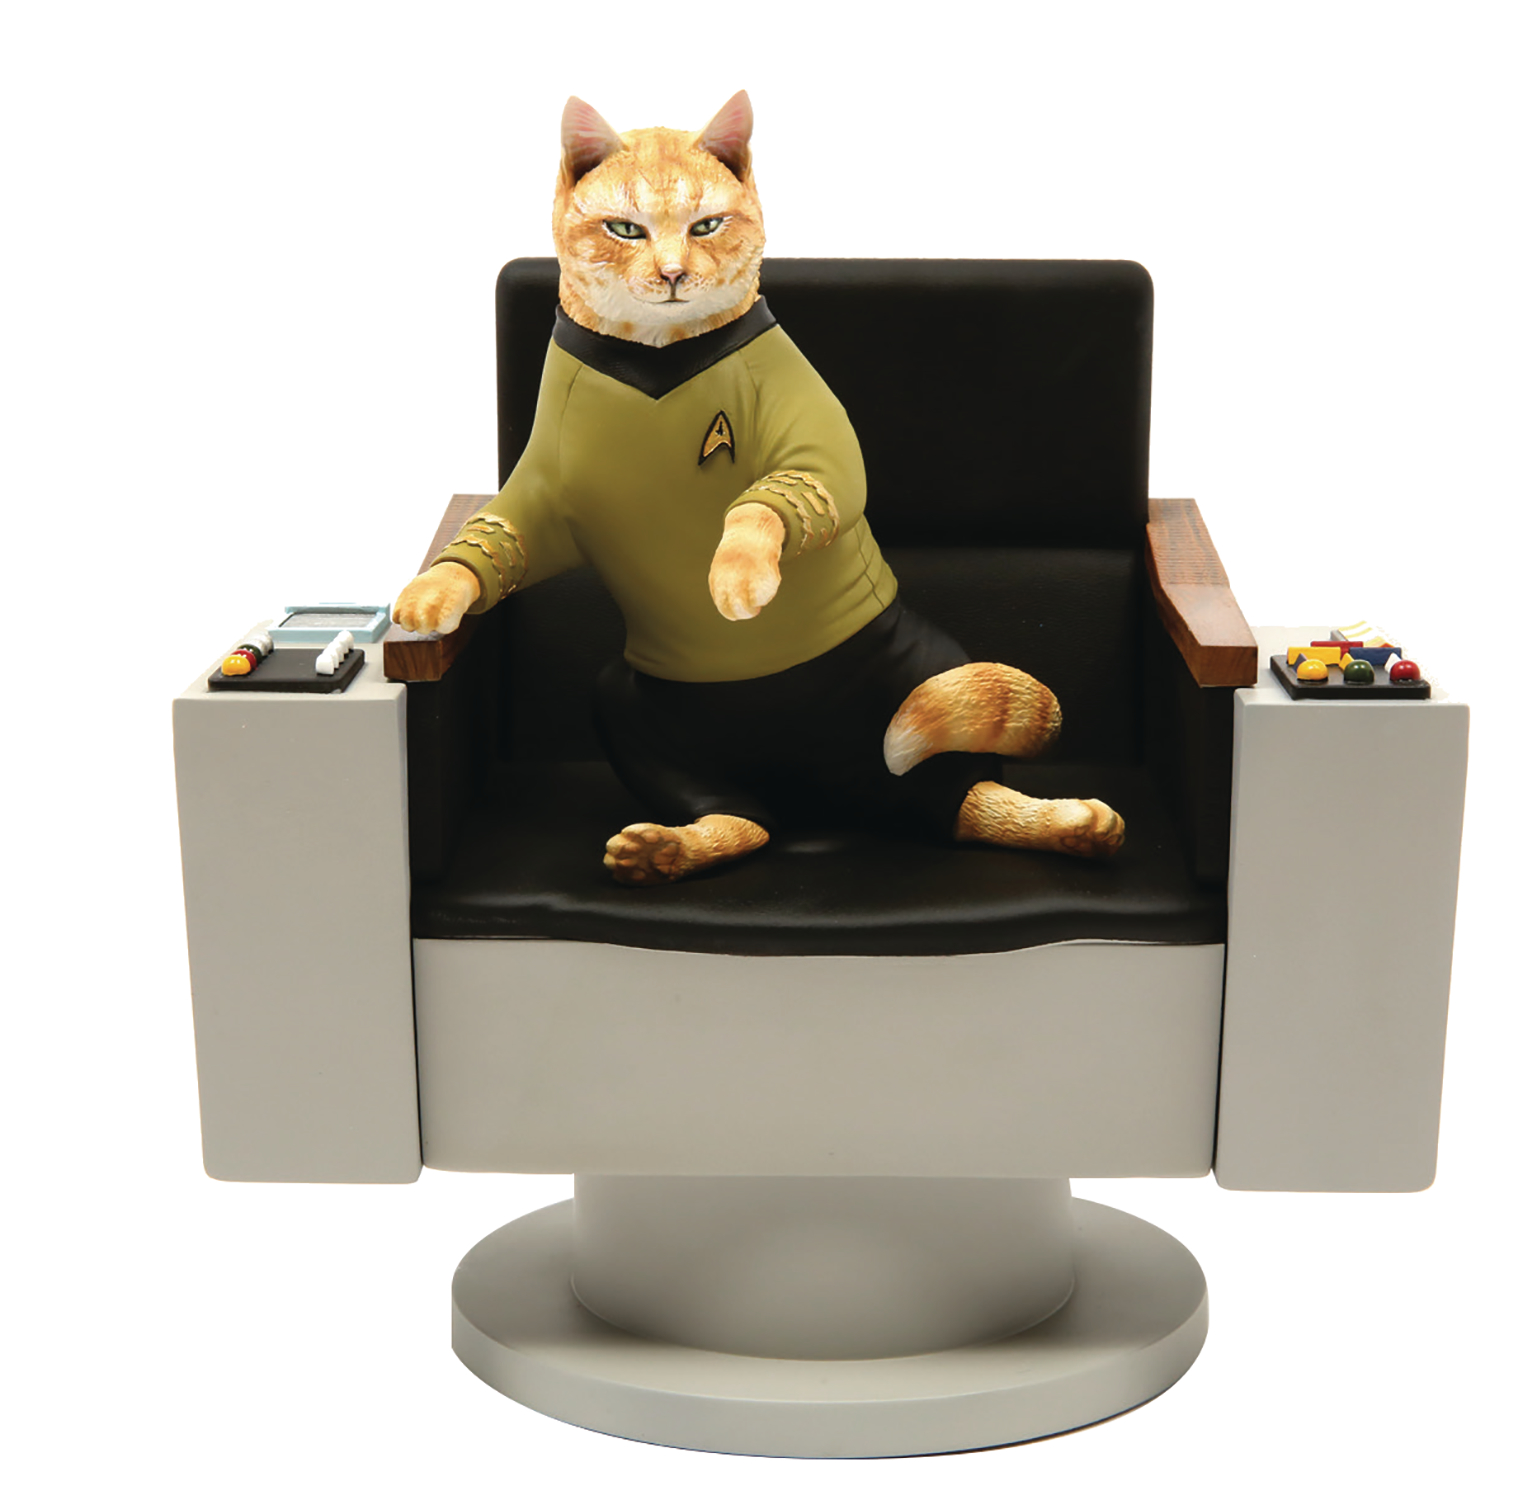 STAR TREK TOS CAPT KIRK CAT POLYSTONE STATUE (AUG199073)